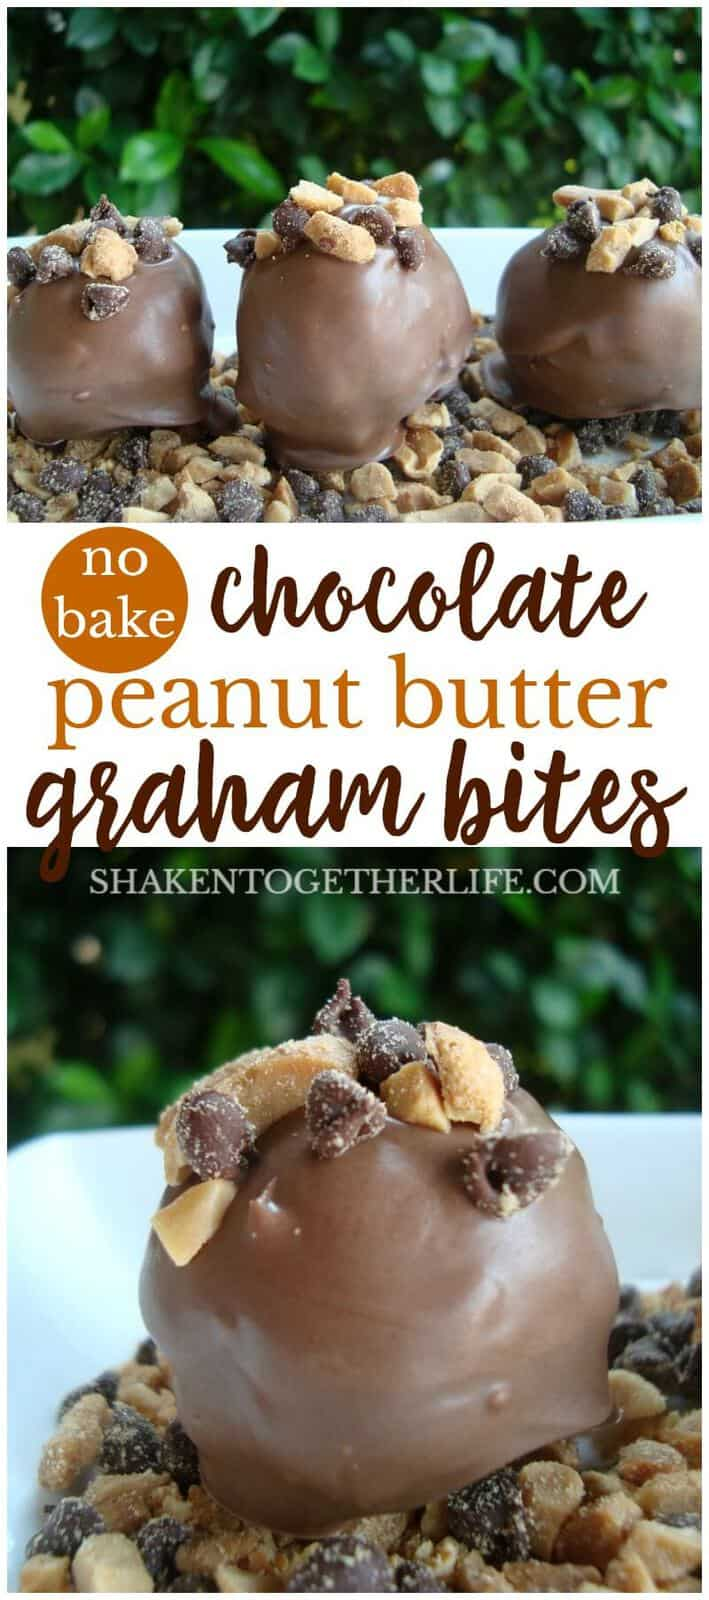 With a crunchy peanut butter inside and creamy chocolate outside, these no bake Chocolate Peanut Butter Graham Bites are wildly addictive and almost too easy to eat!